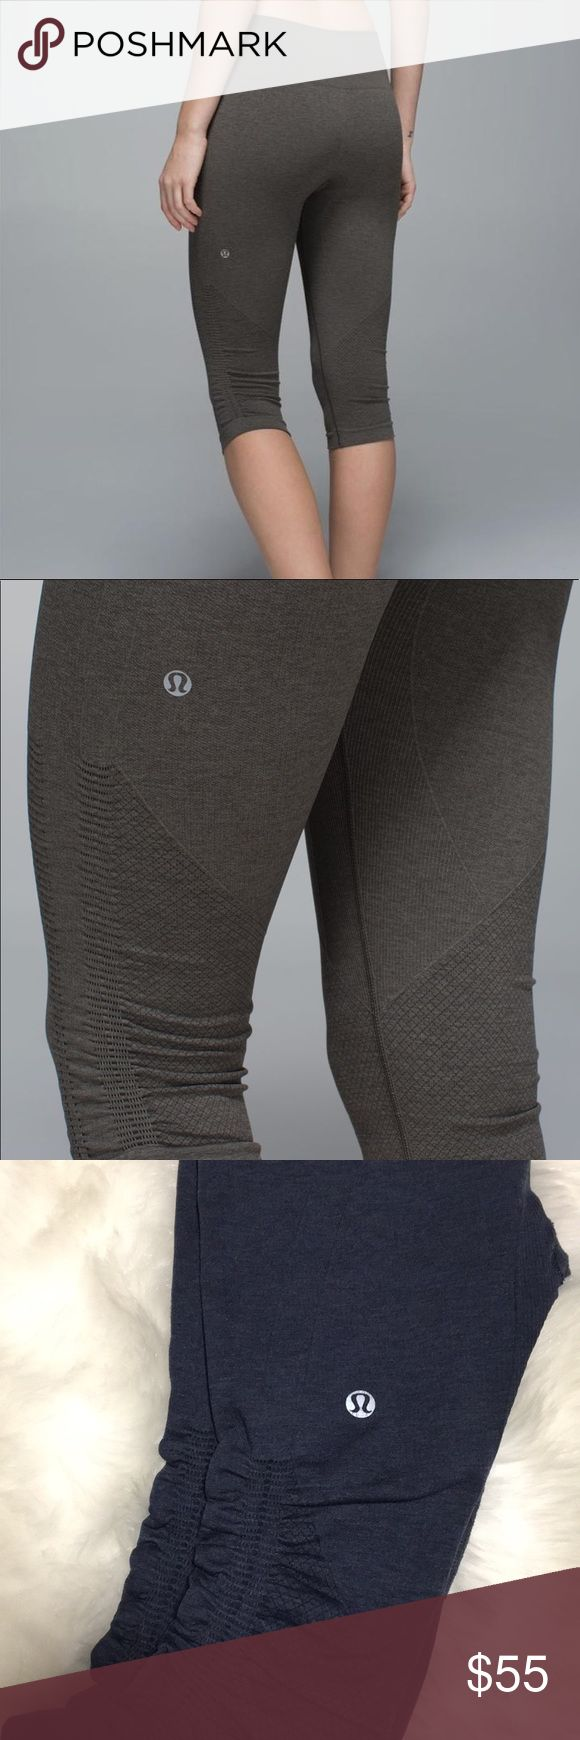 Lululemon in the flow crop pants In great condition! Does not have tags, fit a small, the color is a dark navy blue. Stock photo is to show how they look when you wear them. lululemon athletica Pants Capris